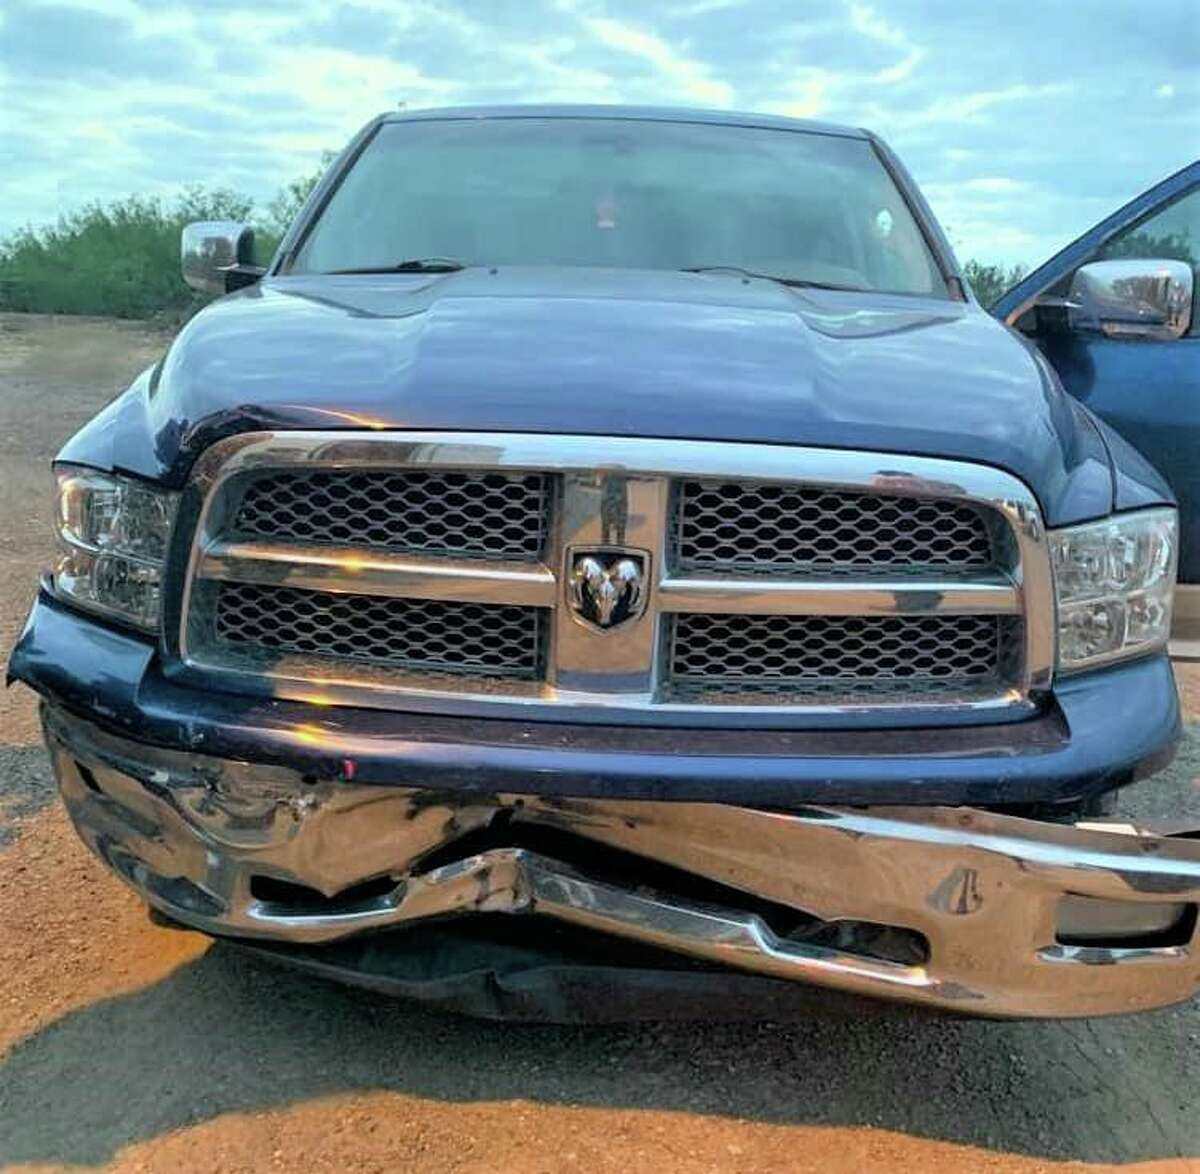 This vehicle struck a U.S. Border Patrol unit as the suspect attempted to flee during a human smuggling attempt.